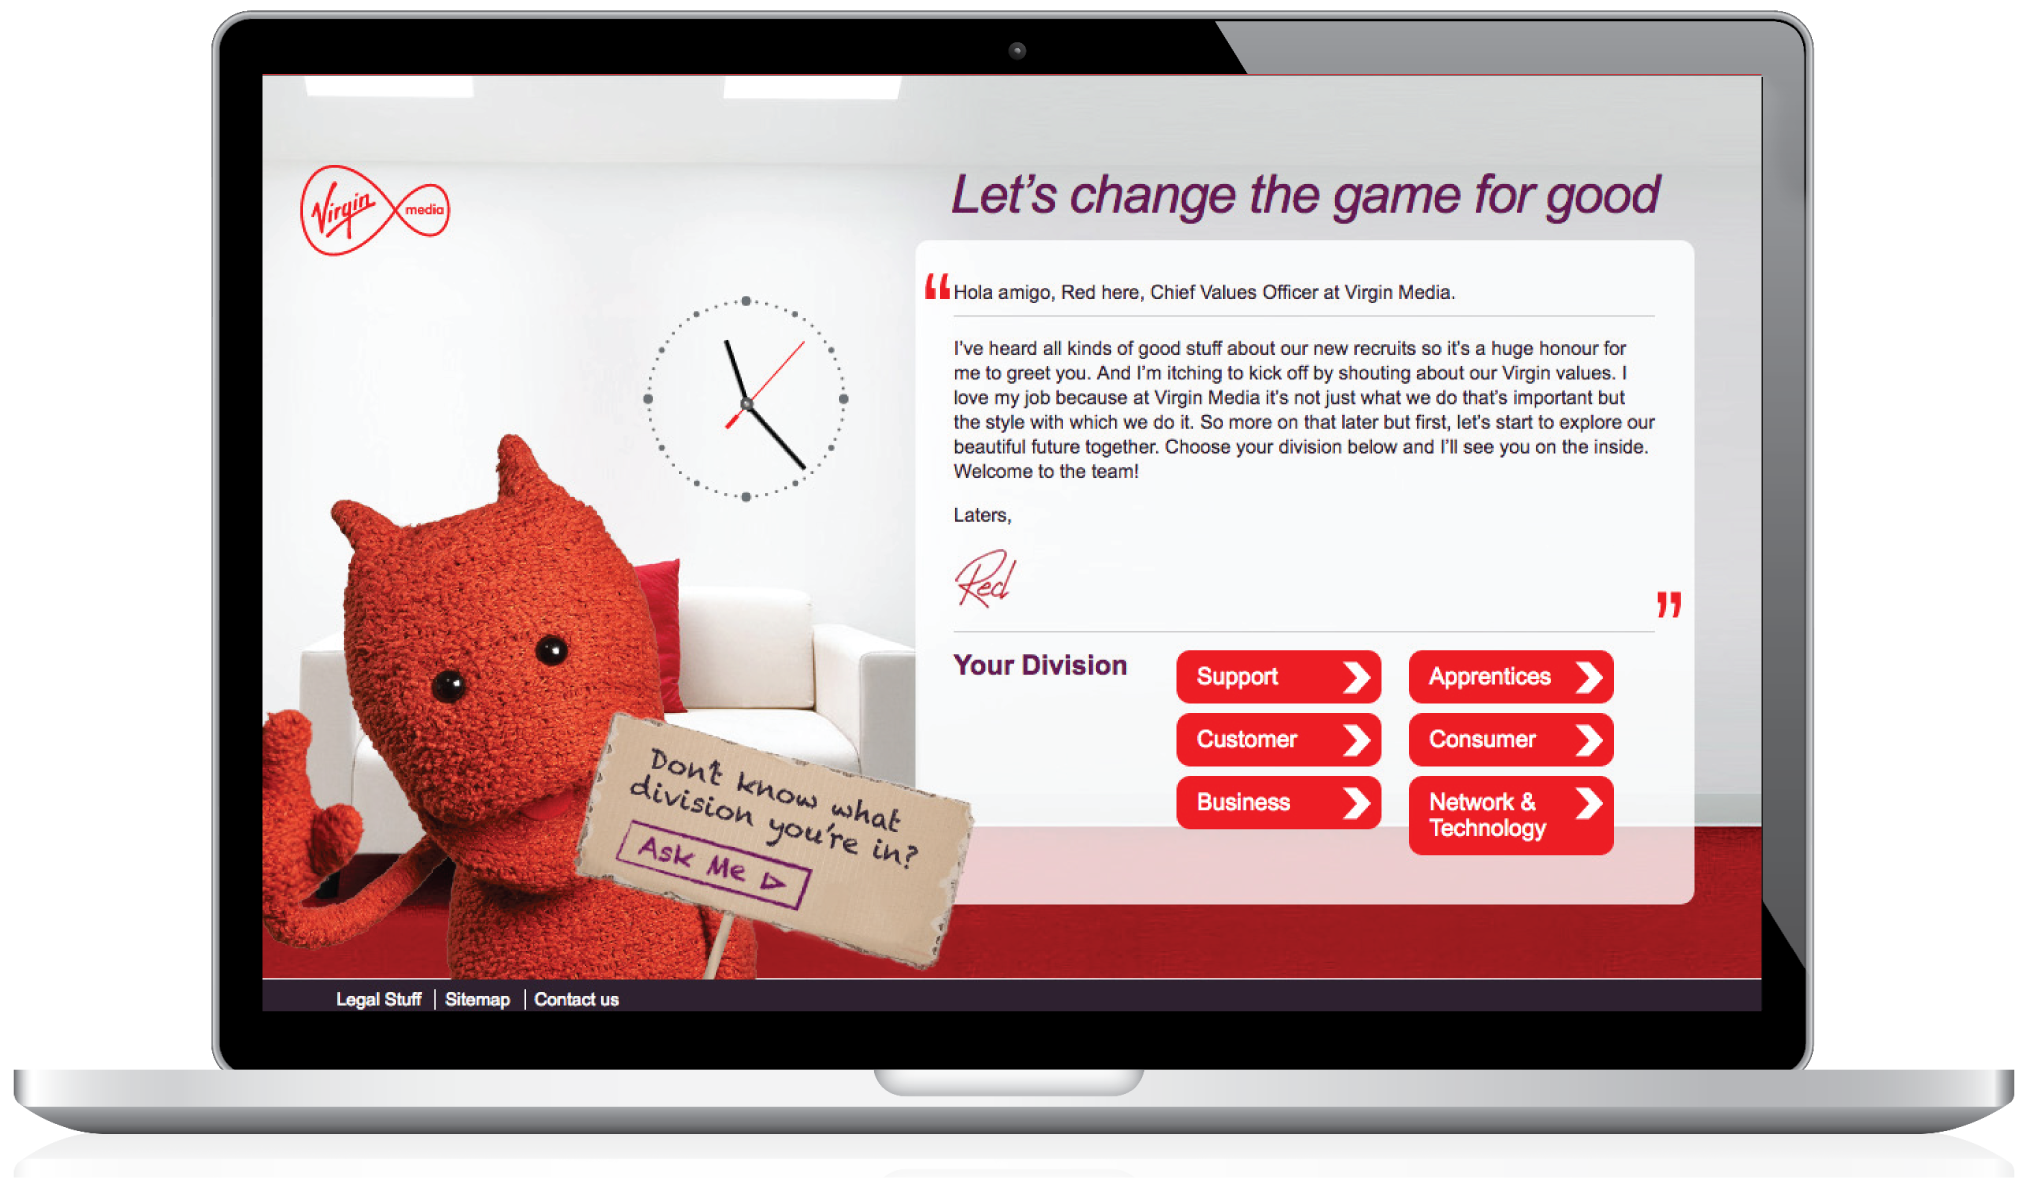 Virgin media onboarding website